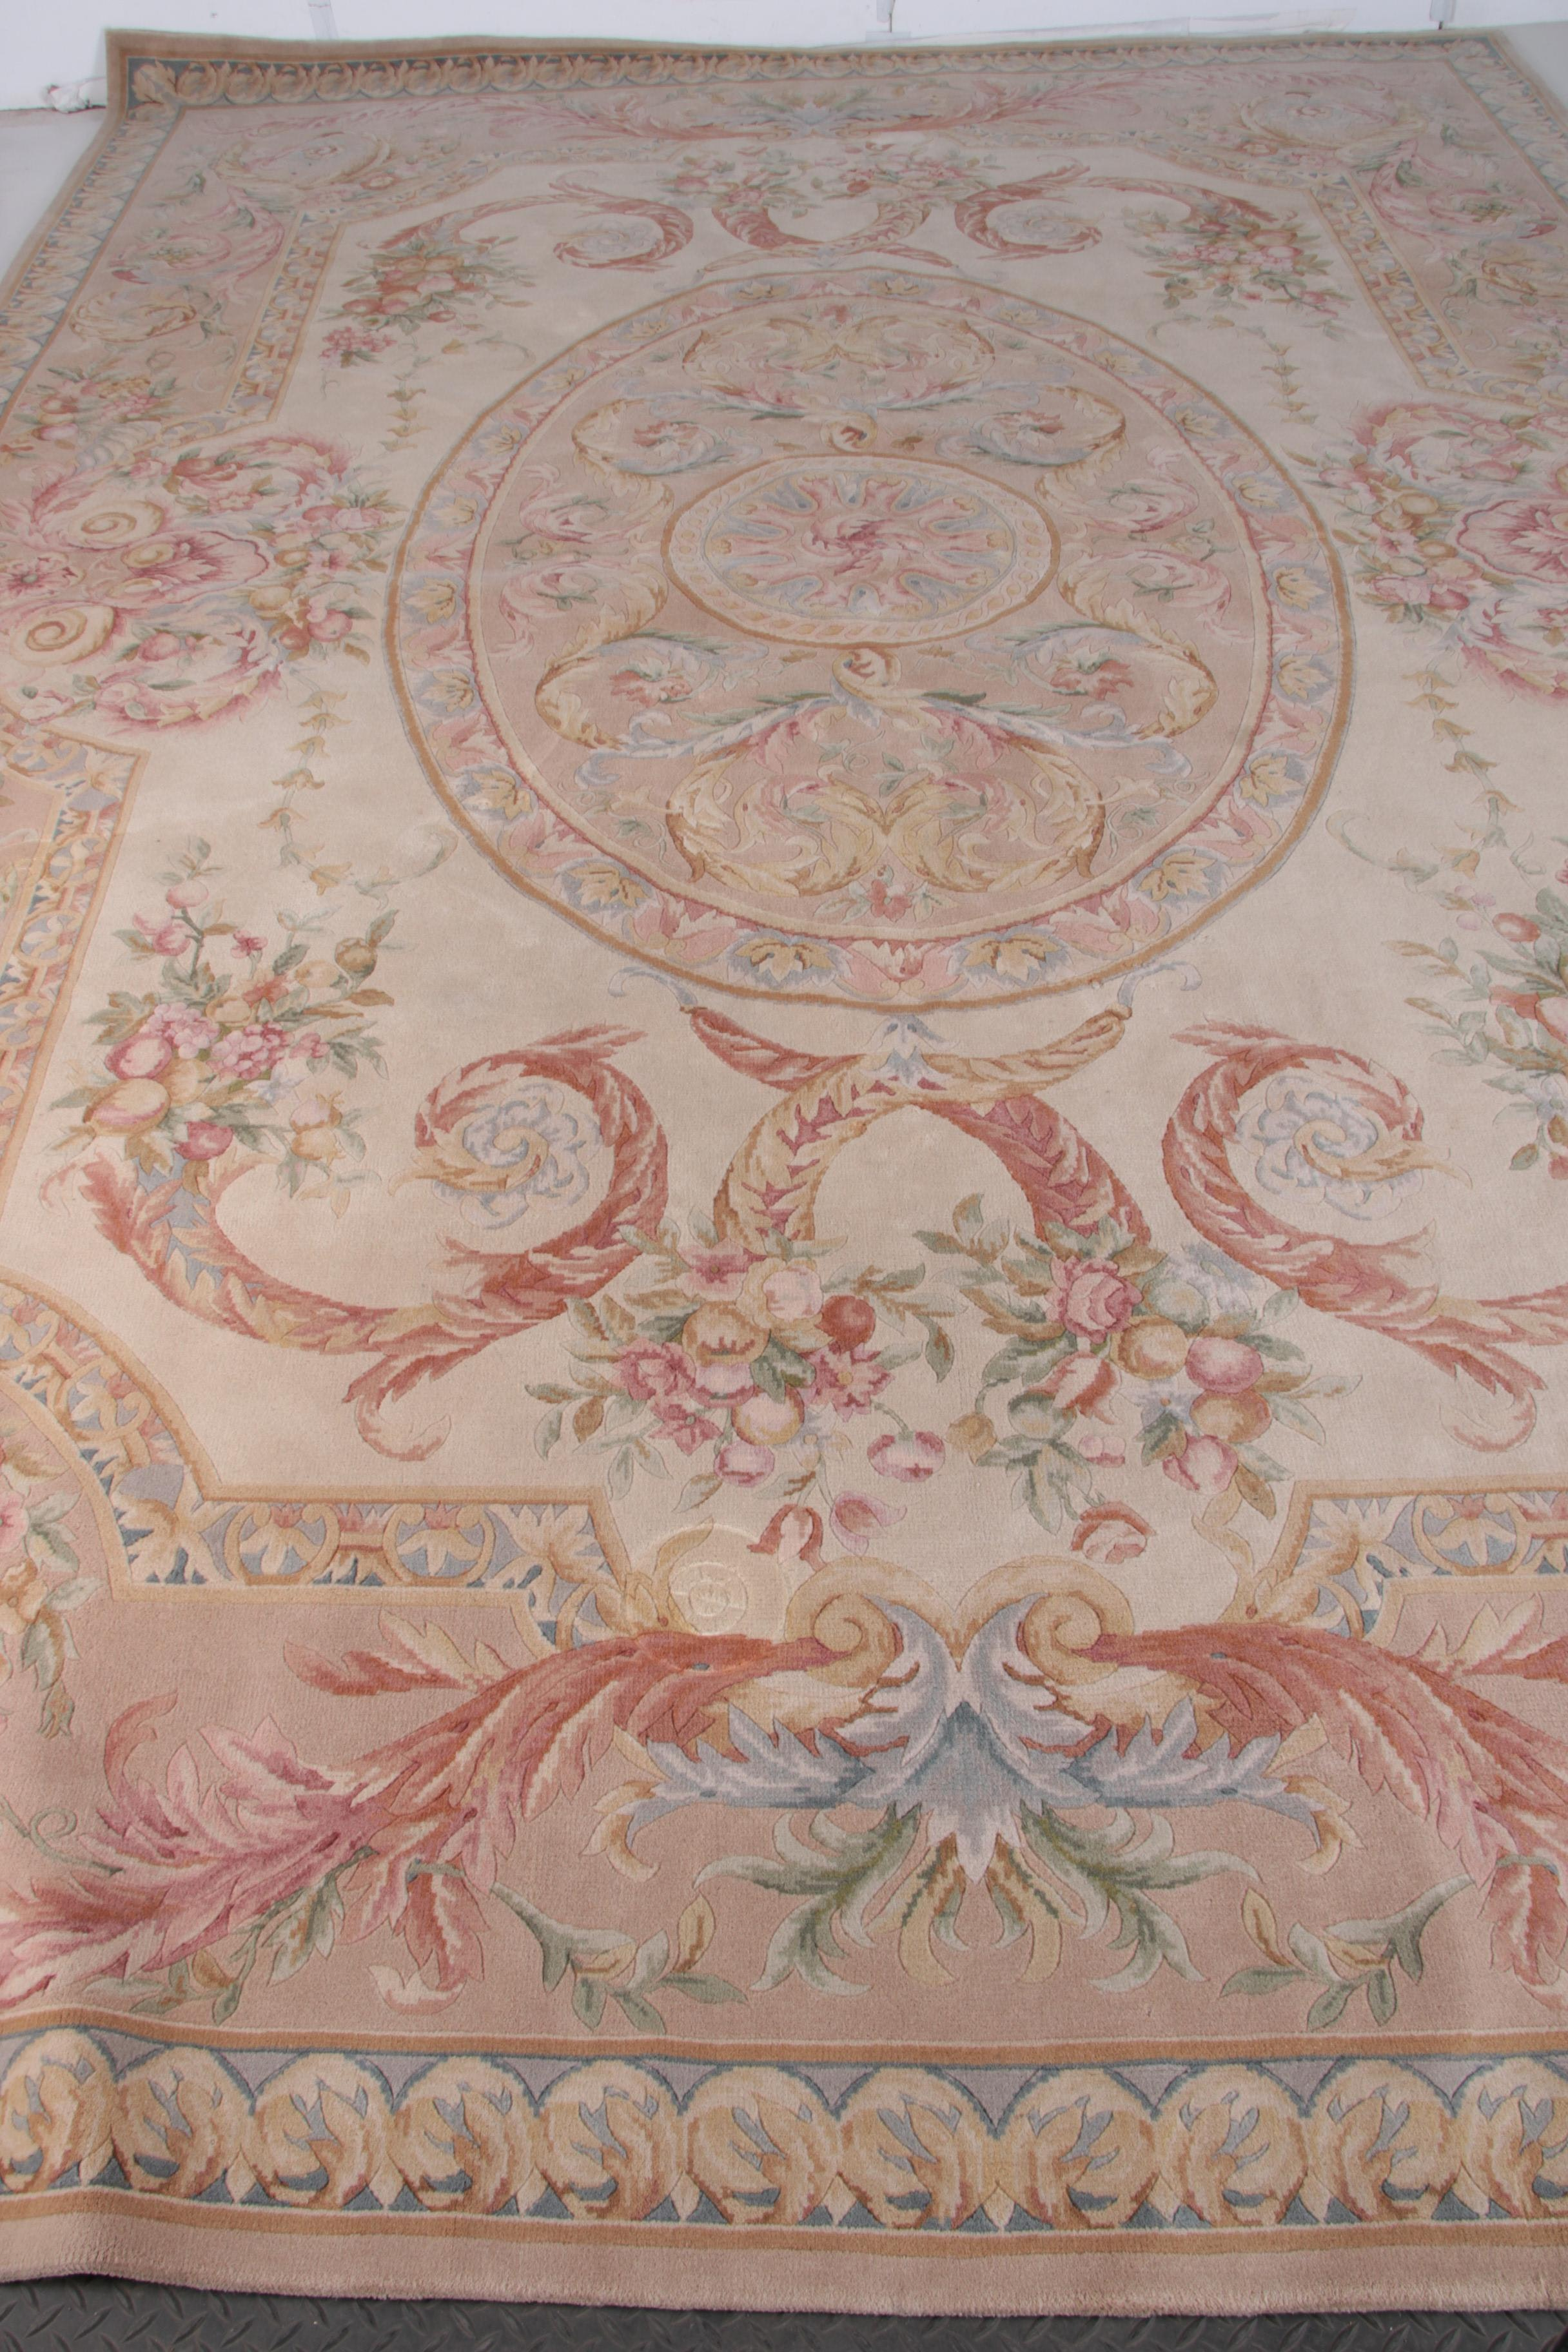 Large Semi-Antique Hand-Knotted Savonnerie-Style Area Rug